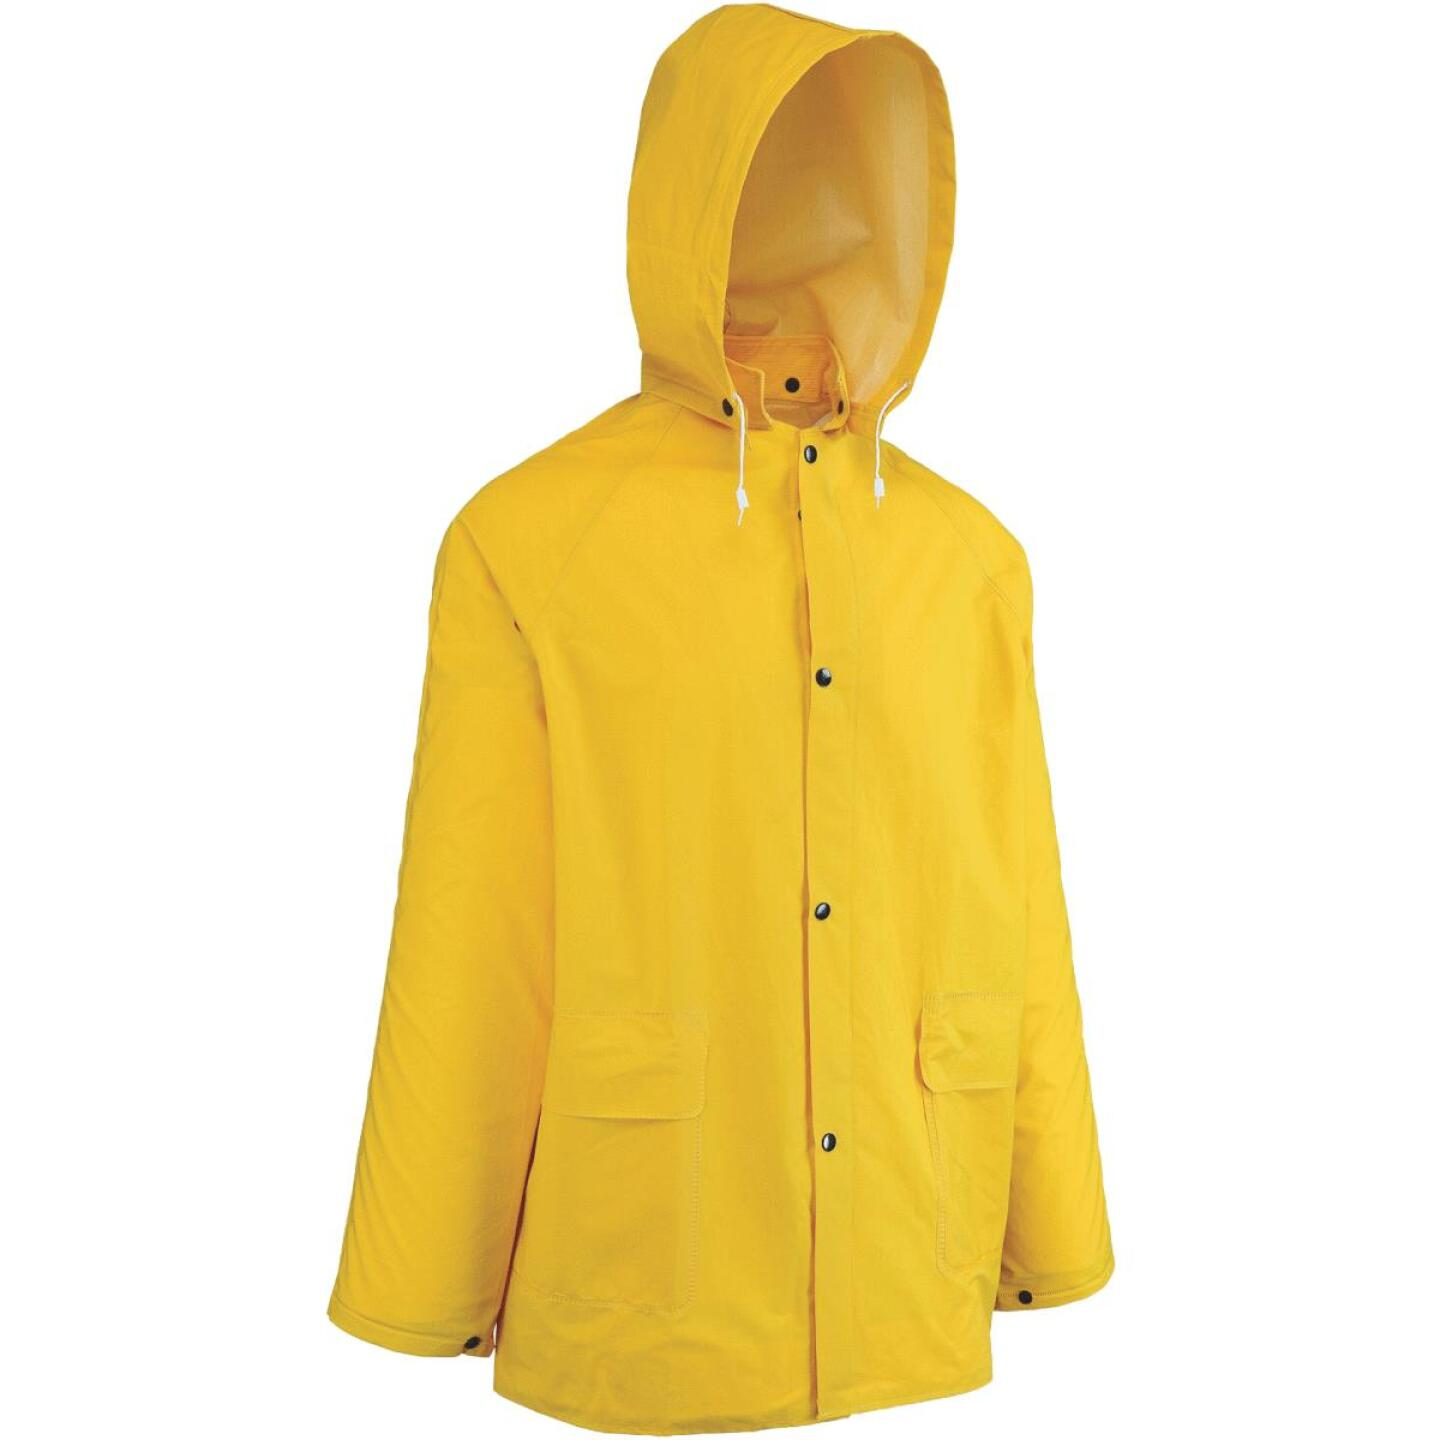 West Chester 2XL Yellow PVC Raincoat Image 1